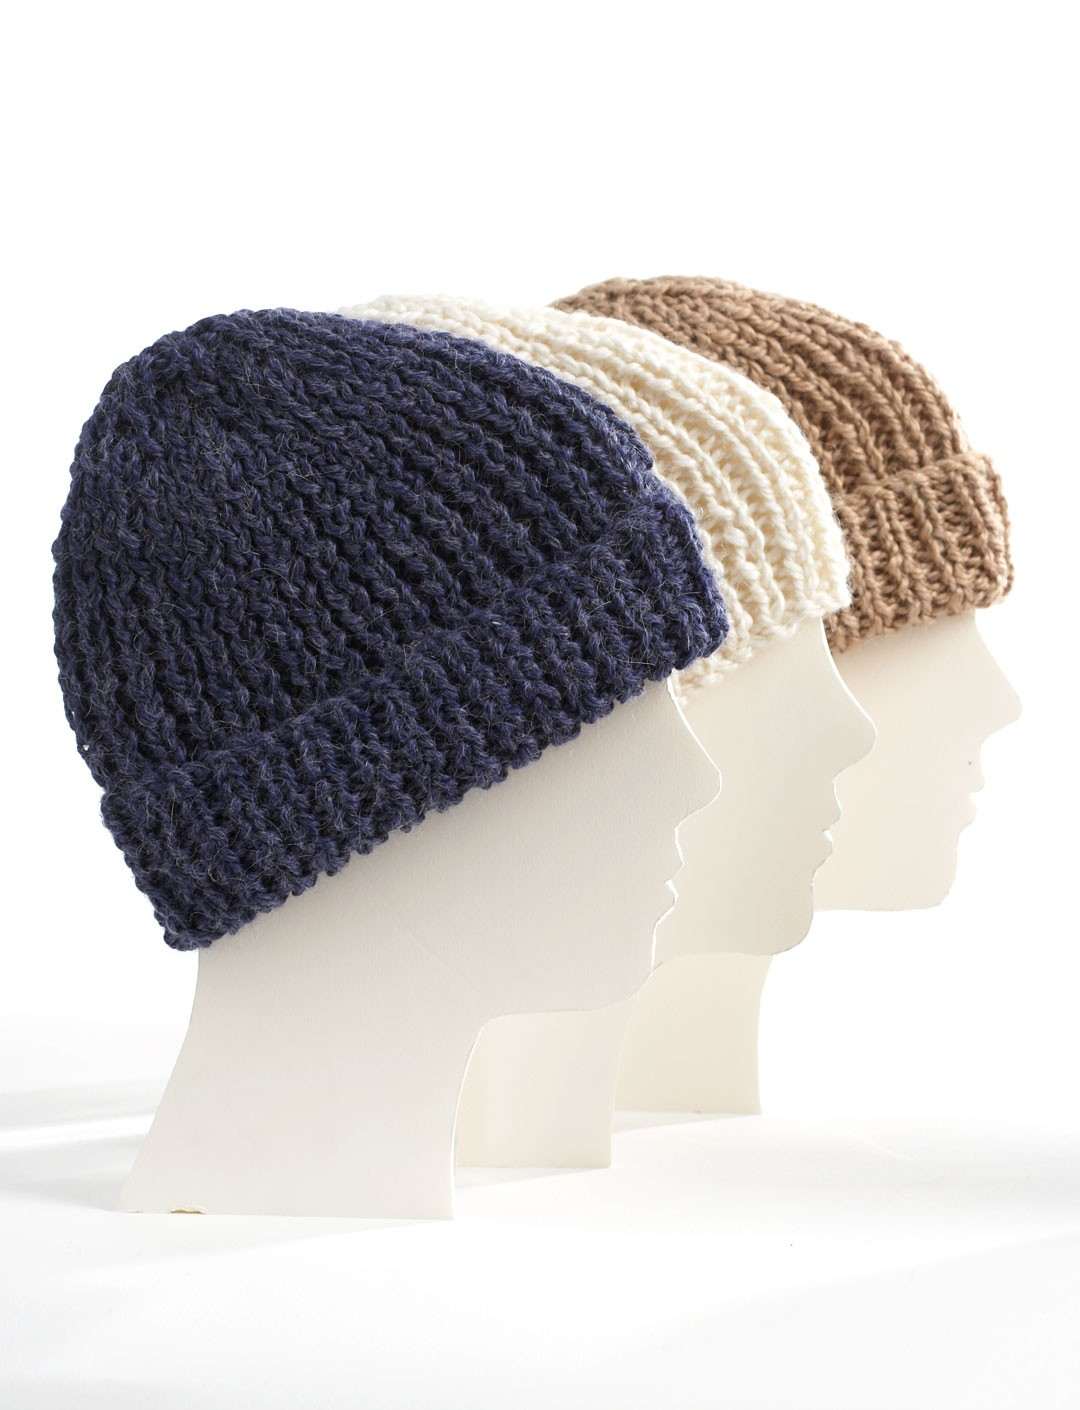 Bernat Knit Family Toques, Knit Pattern Yarnspirations